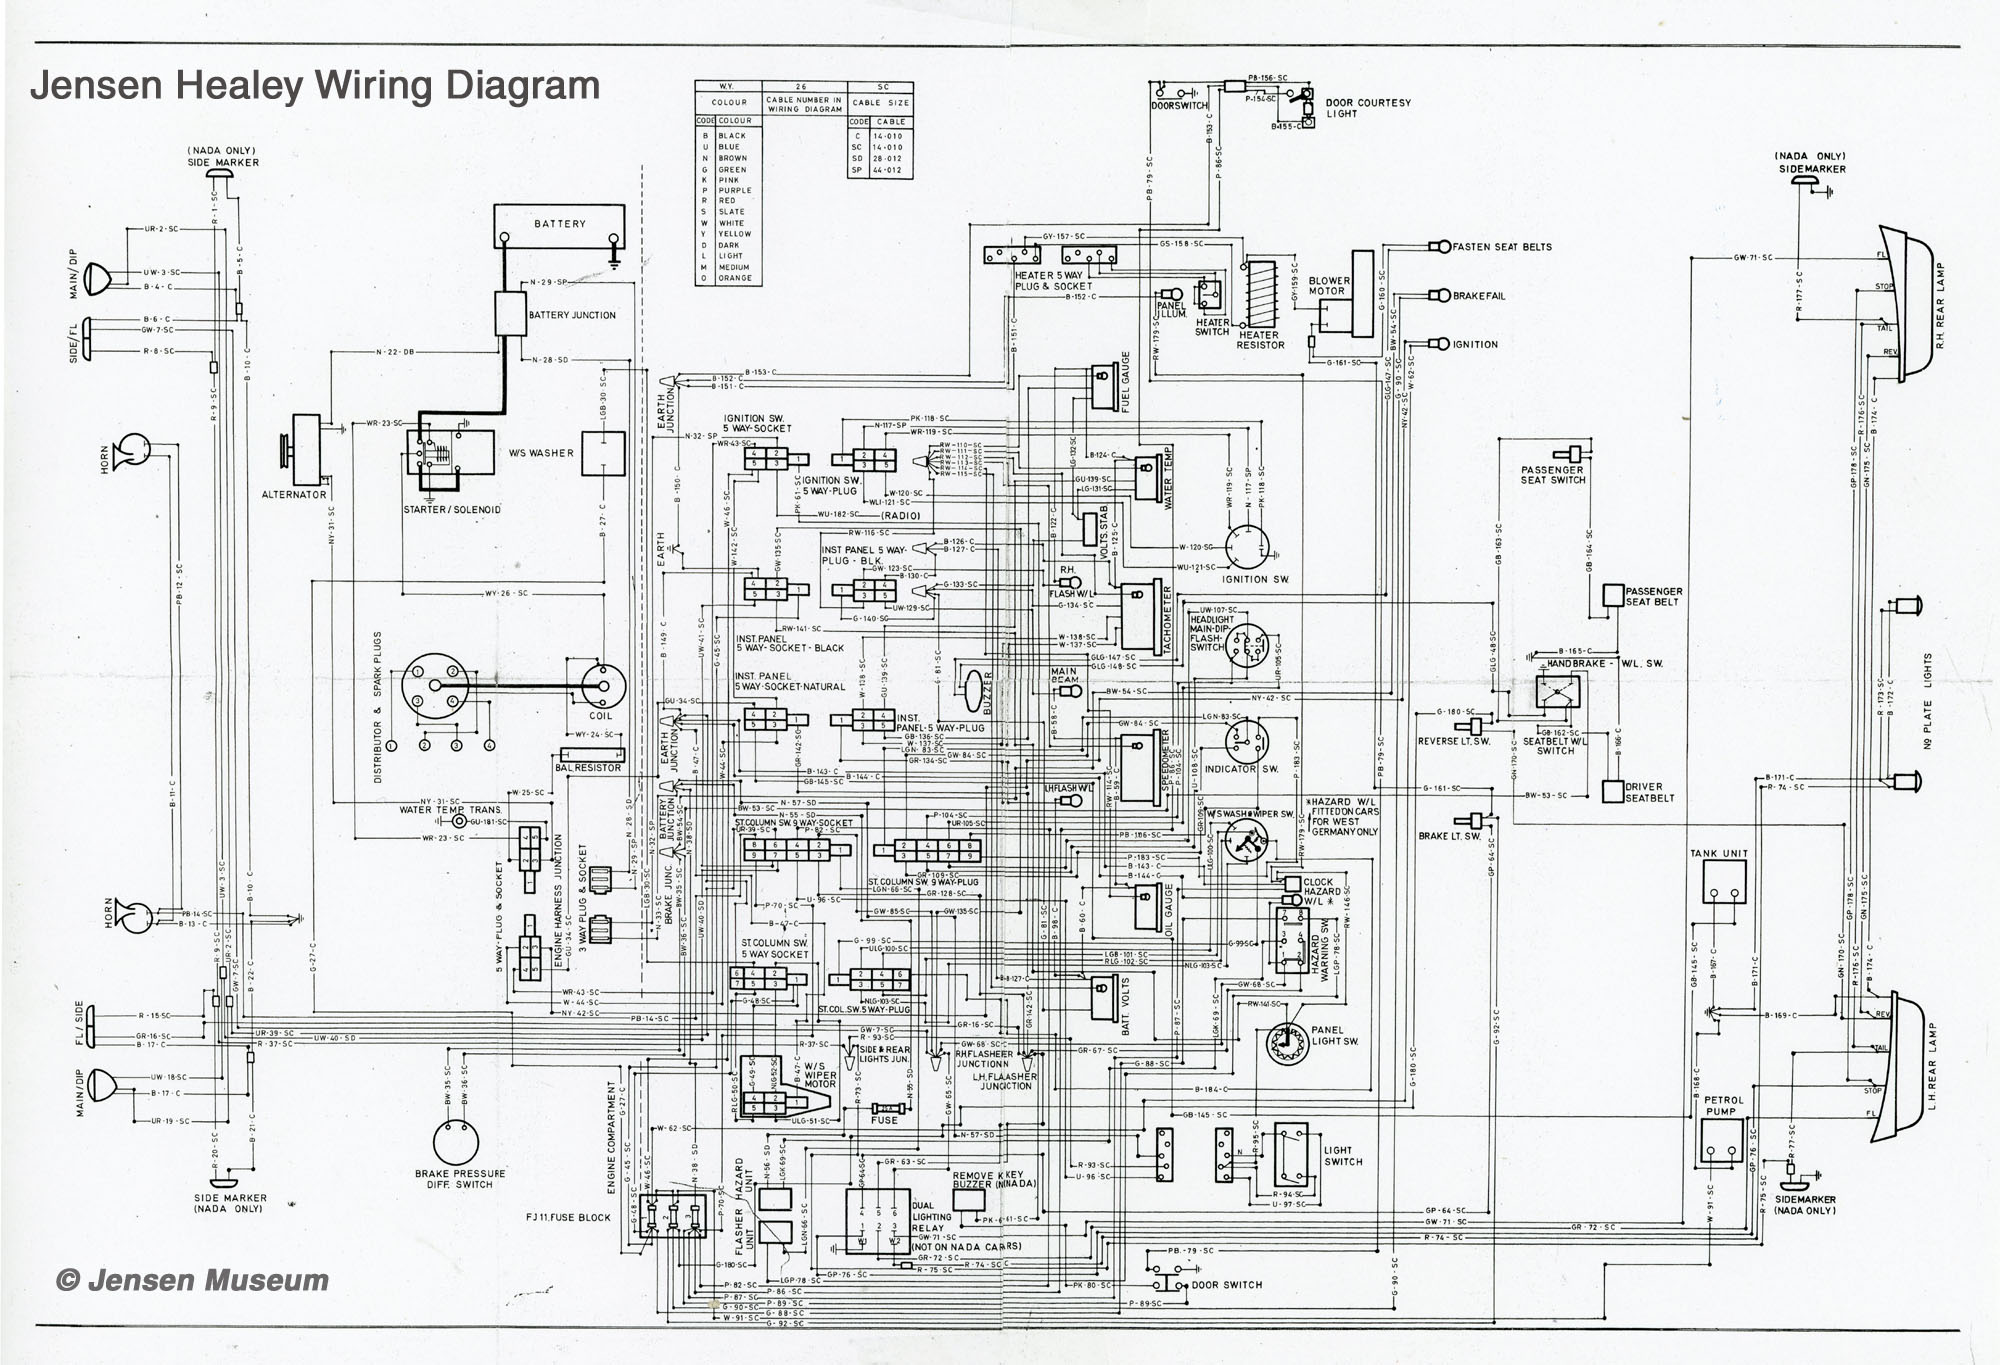 hight resolution of jensen healey wiring diagram the jensen museumjensen healey wiring diagram full size is 2000 1365